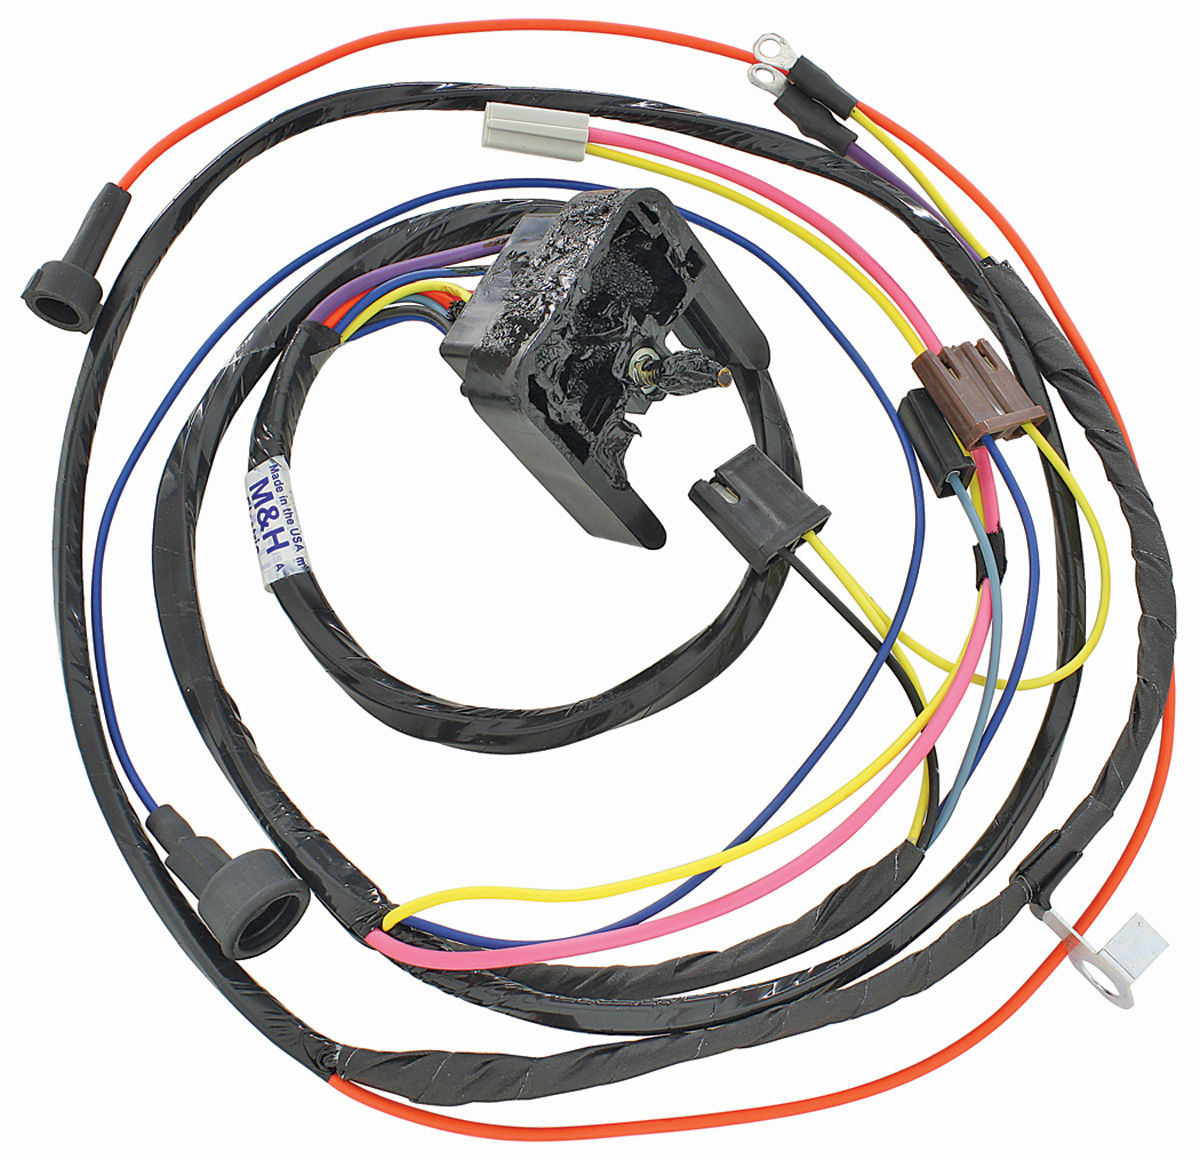 38947 lrg?v=102520130818 m&h 1968 69 chevelle engine harness 396 hei w warning lights 1965 chevelle wiring harness at eliteediting.co